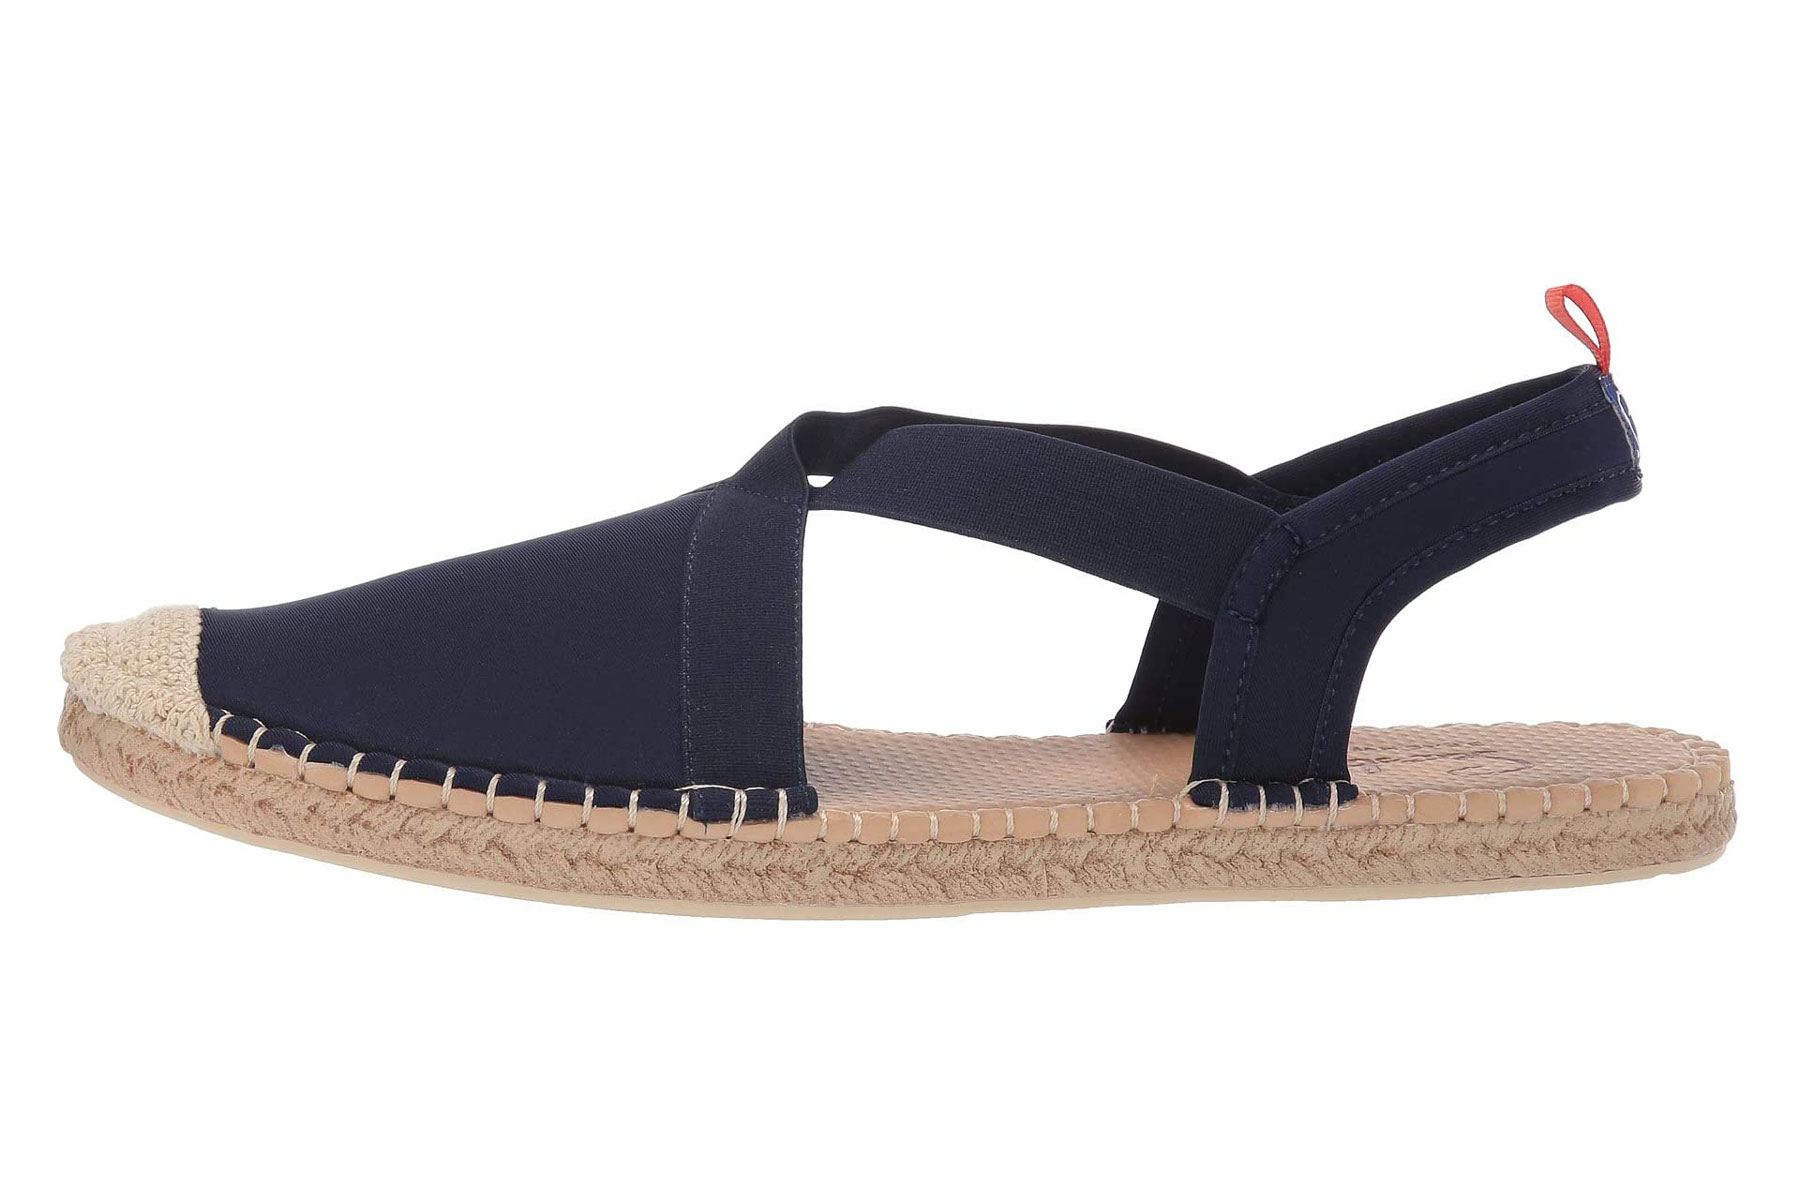 Sea Star Beachwear Slingback Espadrille Water Shoes